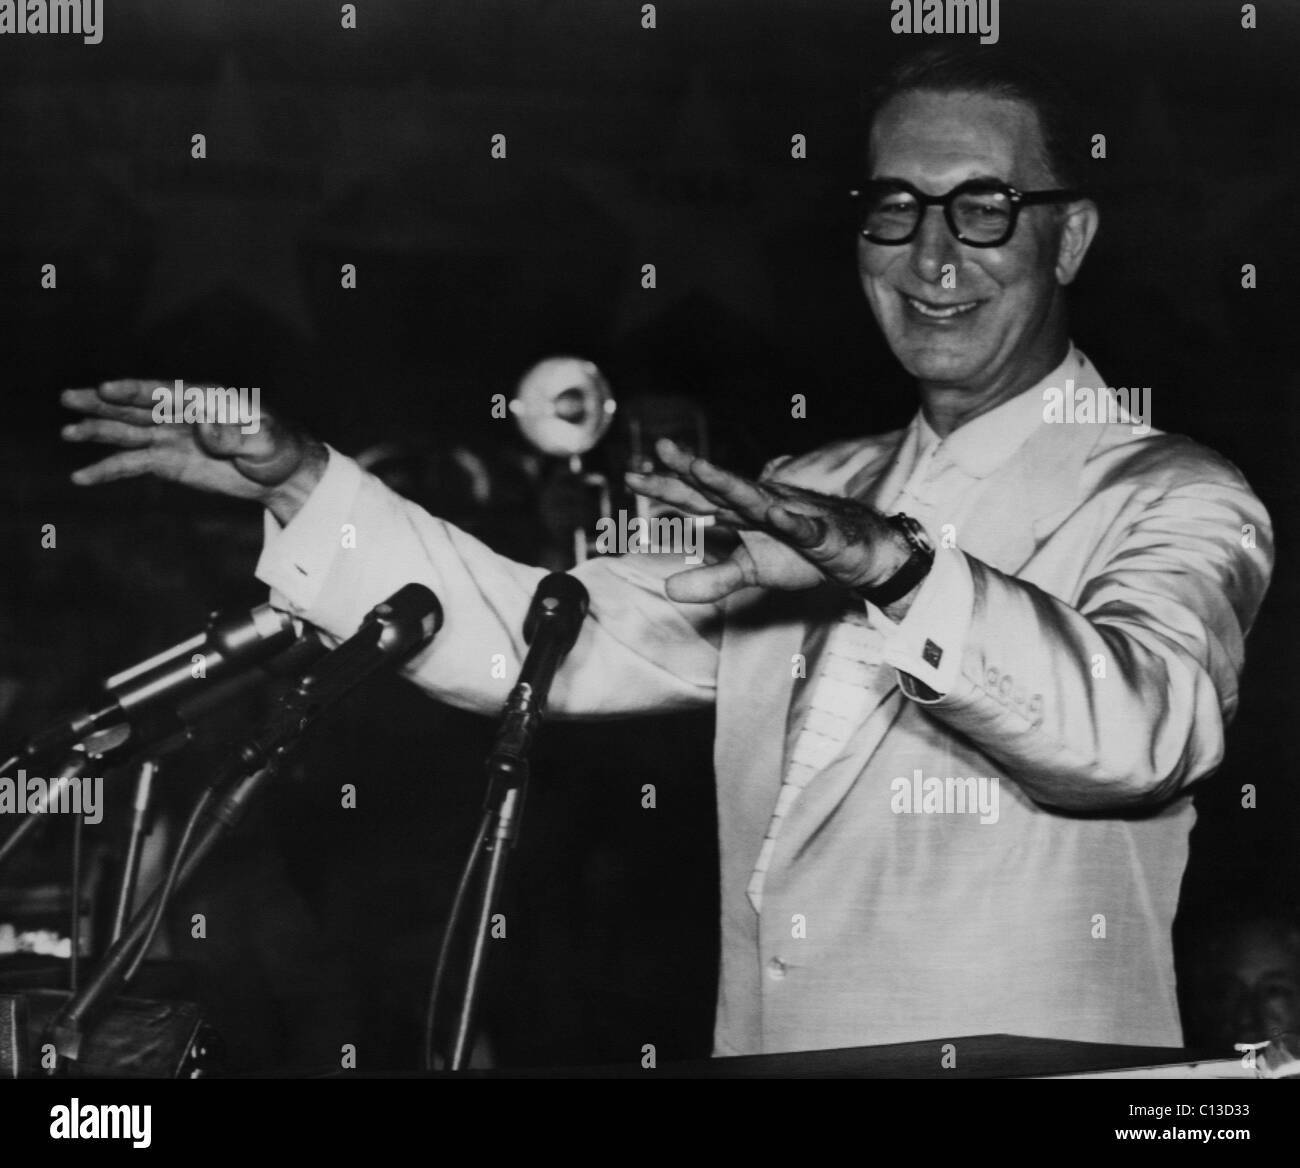 US Elections. US Senator Estes Kefauver accepting the Democratic Party nomination for Vice President at the Democratic - Stock Image